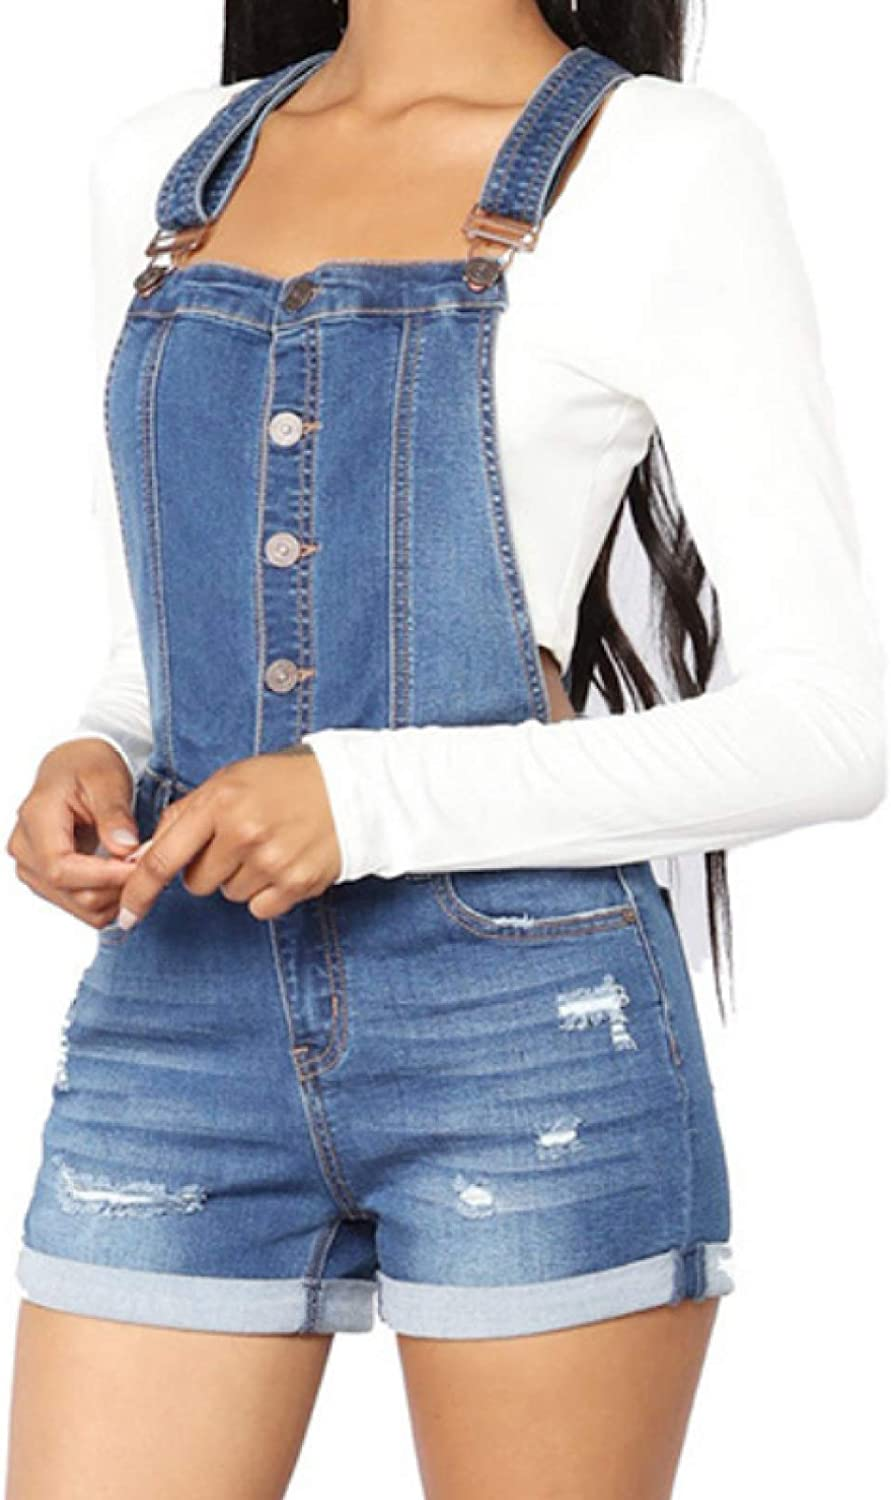 Zestion Women Denim Shorts Bib Trousers Ripped Holes Distressed Washed Double-Pocket